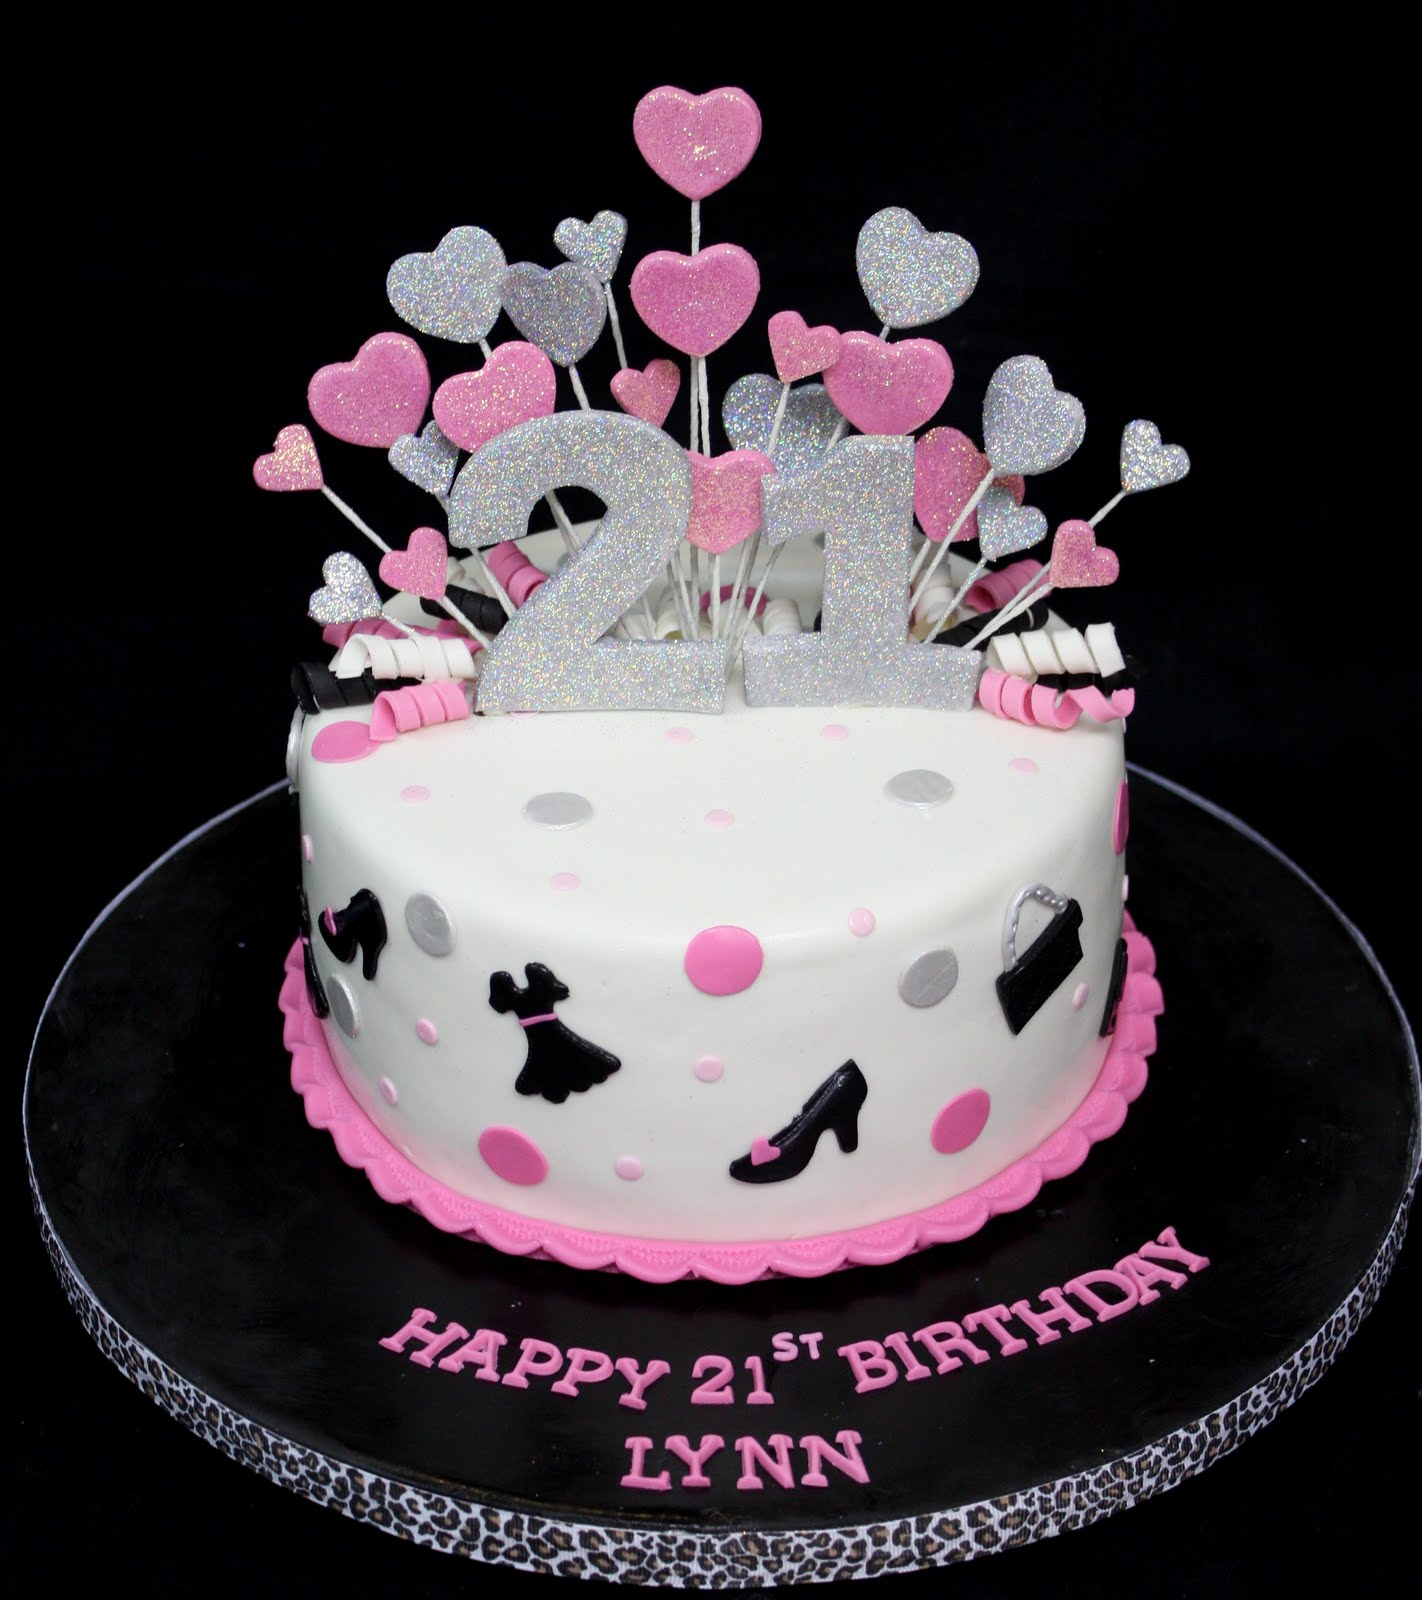 Birthday Cake Ideas And Pictures : 21st Birthday Cakes   Decoration Ideas Little Birthday Cakes